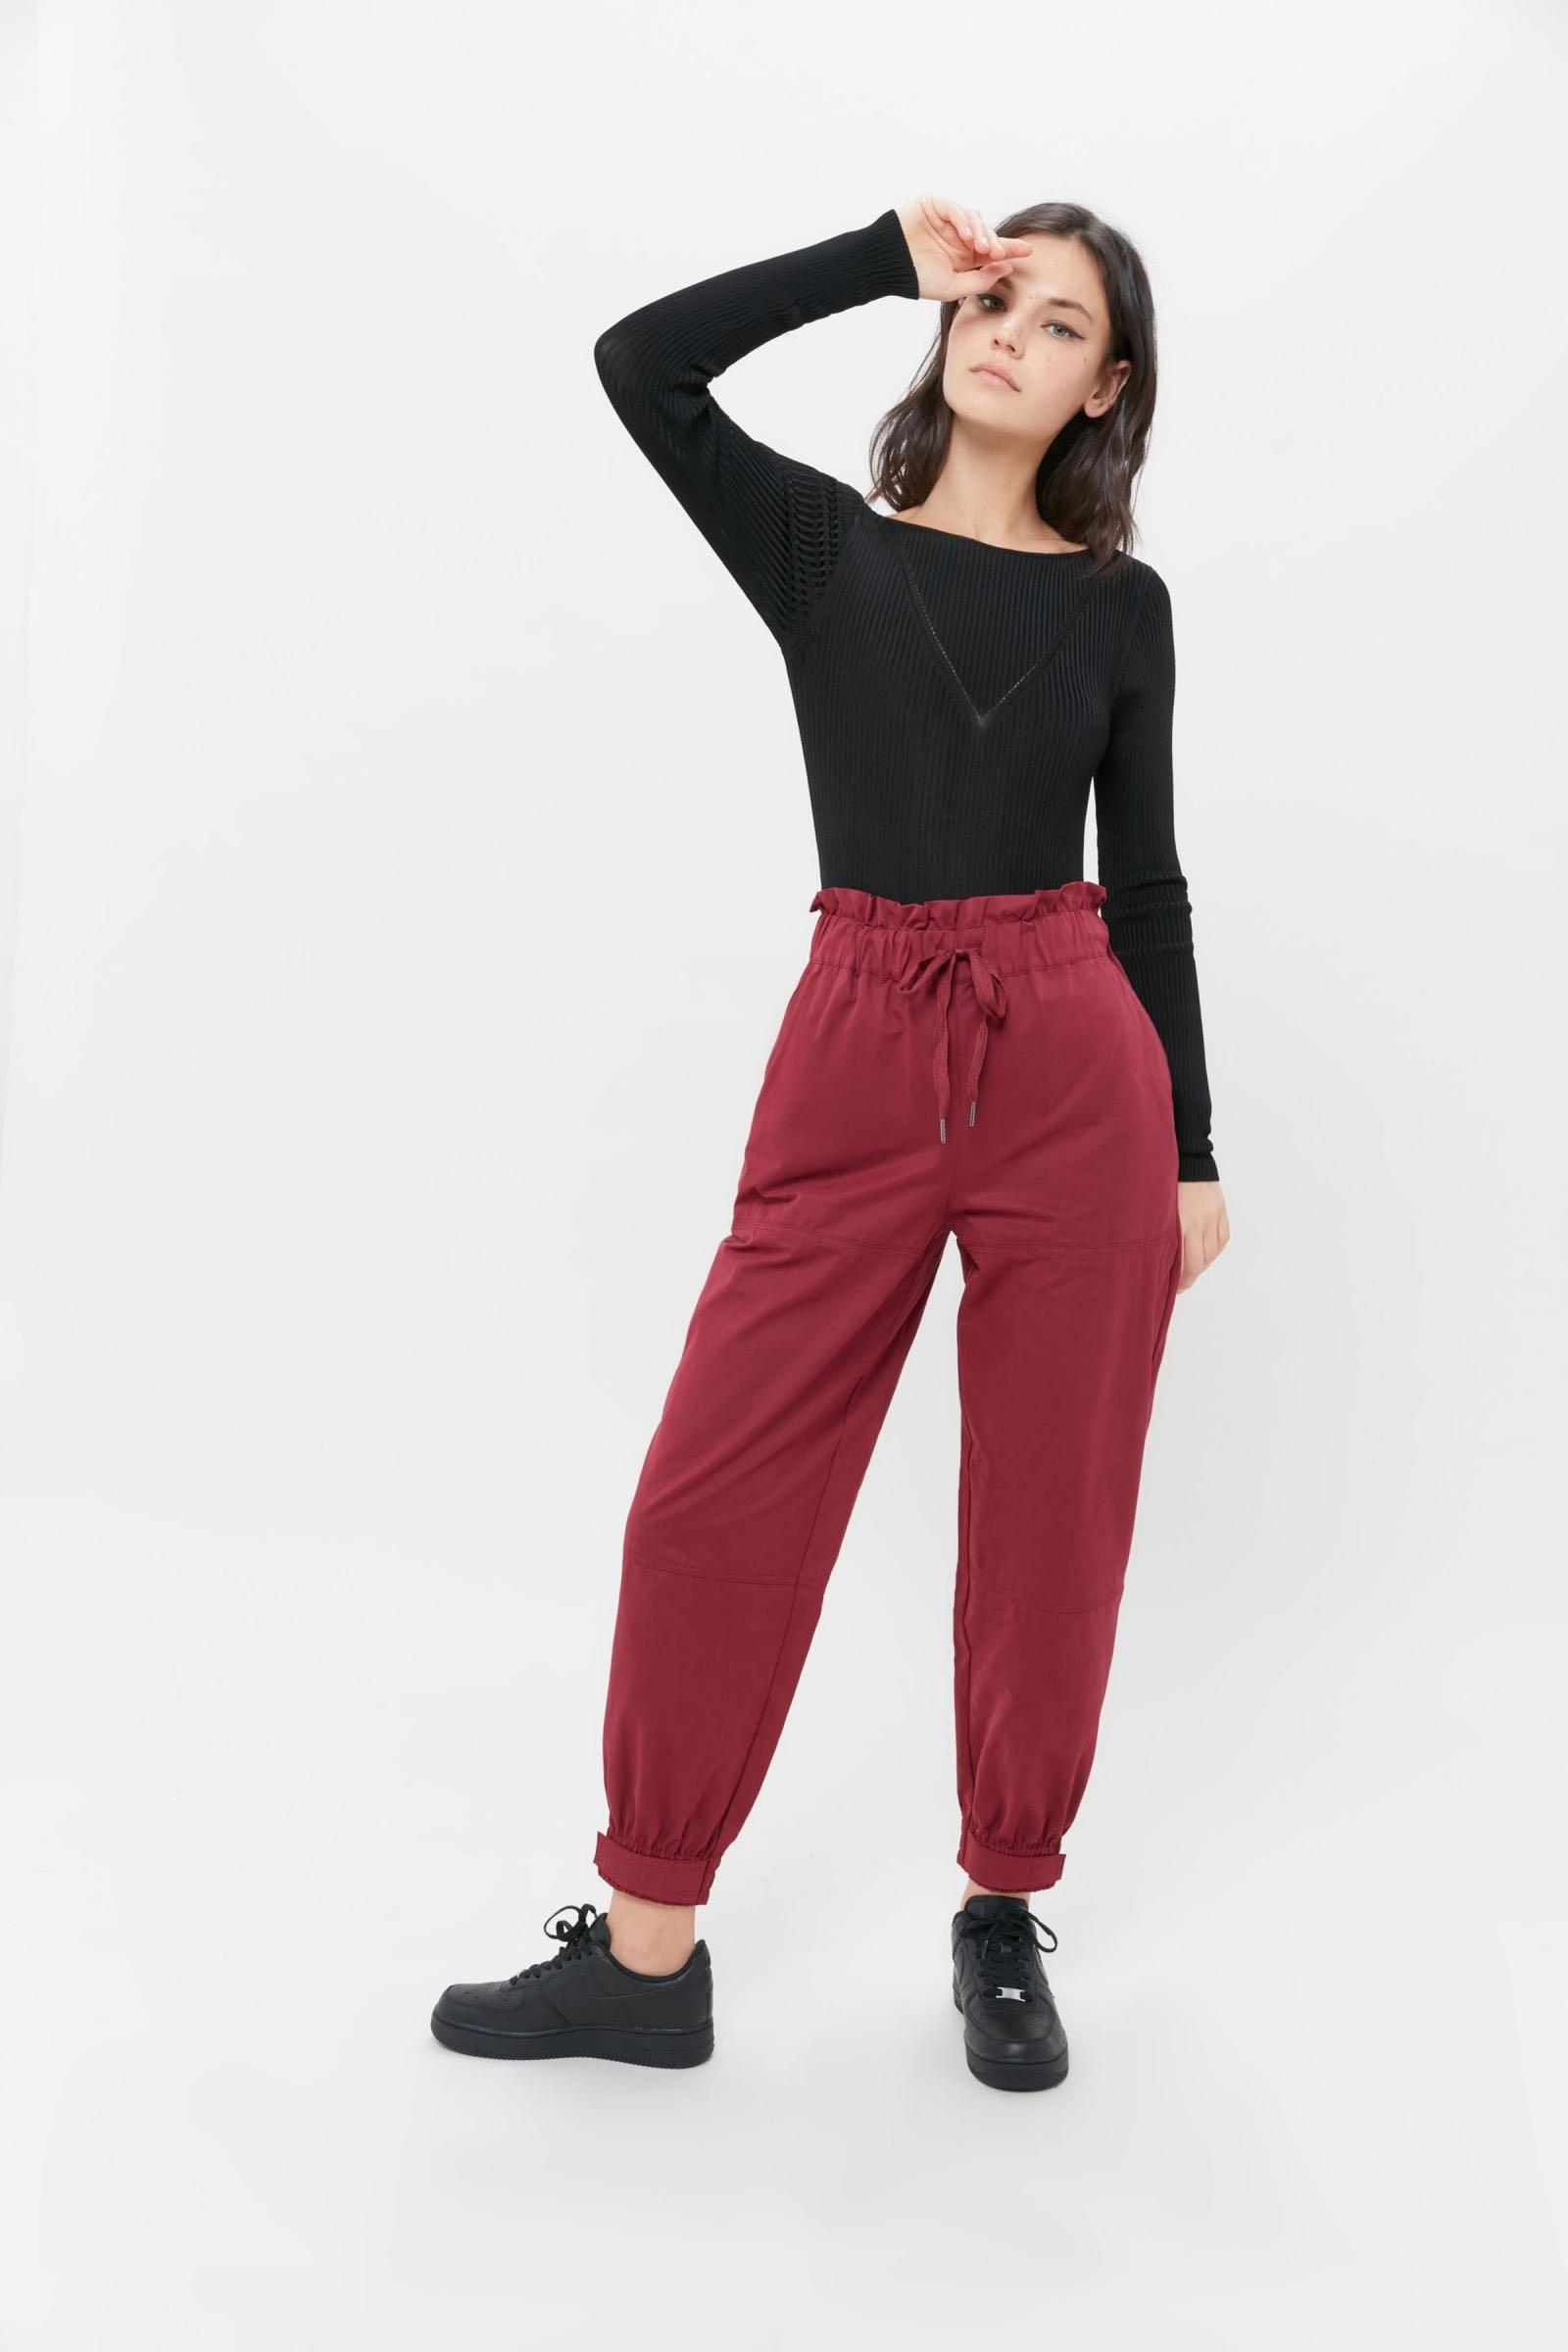 URBAN OUTFITTERS magenta paper bag pants